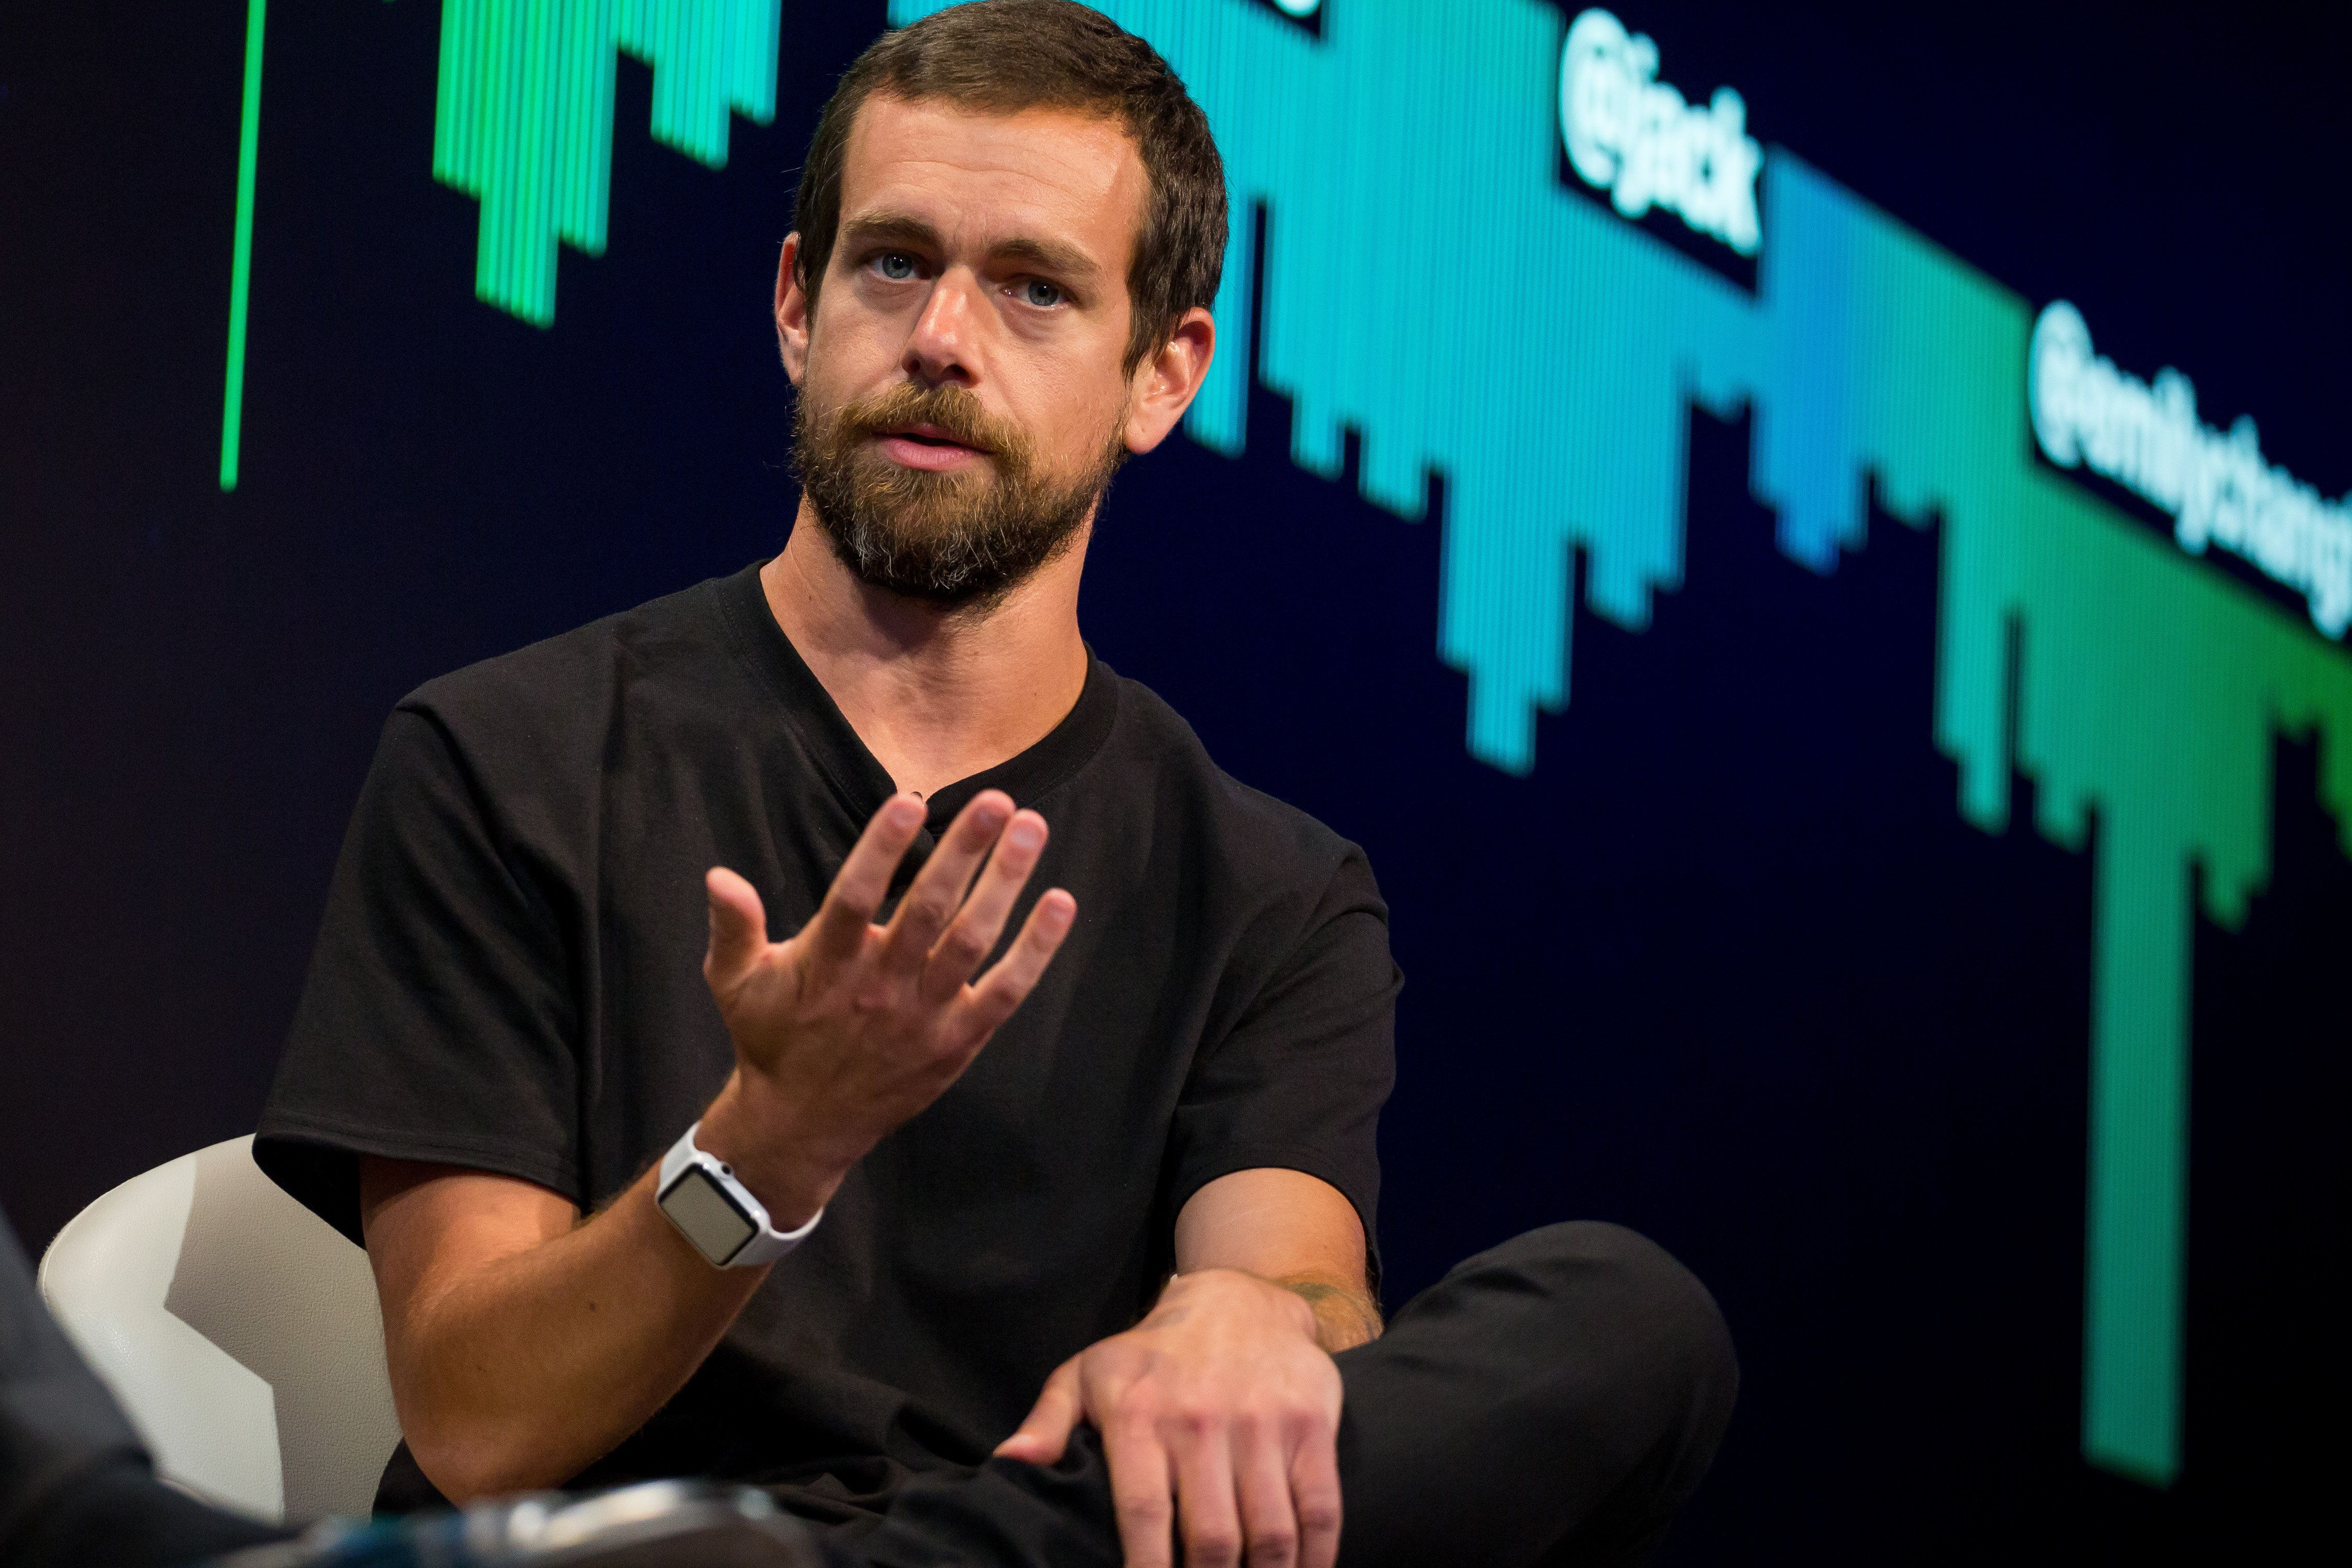 Jack Dorsey, co-founder and chief executive officer of Twitter Inc., speaks during an interview in New York, U.S., on Monday, May 1, 2017. Twitter announced a partnership with Bloomberg LP to deliver 24/7 live streaming news program. Photographer: Michael Nagle/Bloomberg via Getty Images